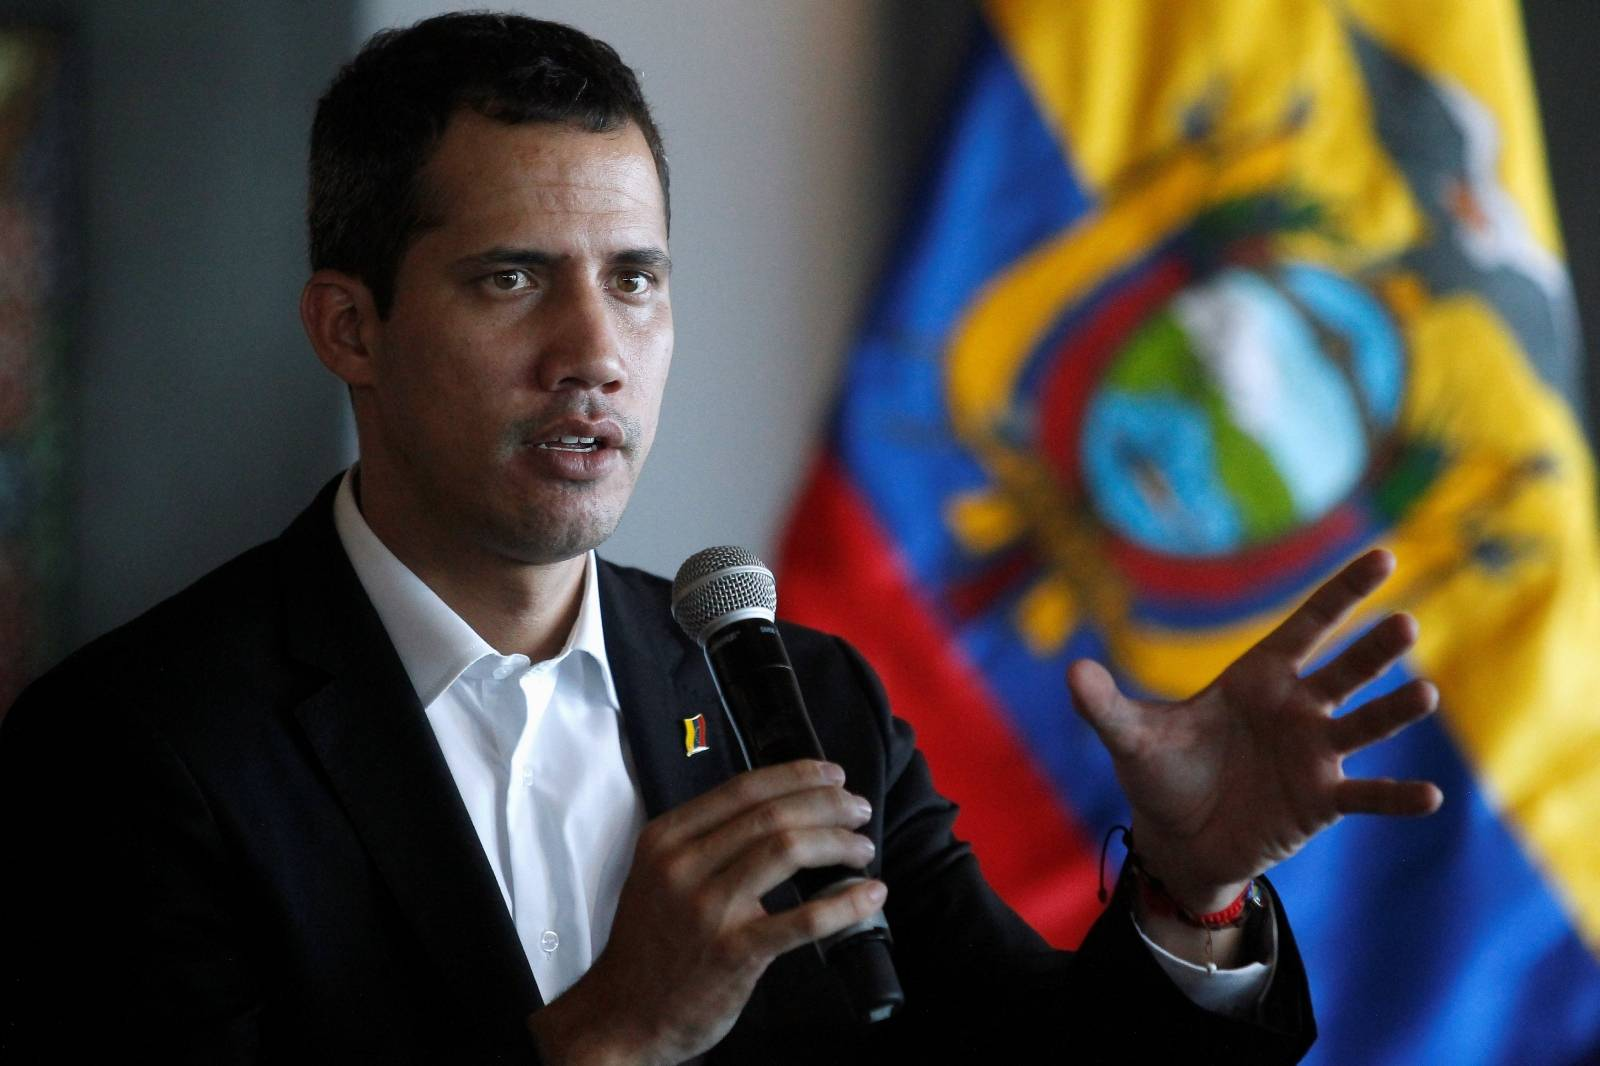 Venezuelan opposition leader Juan Guaido, who many nations have recognized as the country's rightful interim ruler, speaks during a meeting with Ecuador's President Lenin Moreno (not pictured) in Salinas